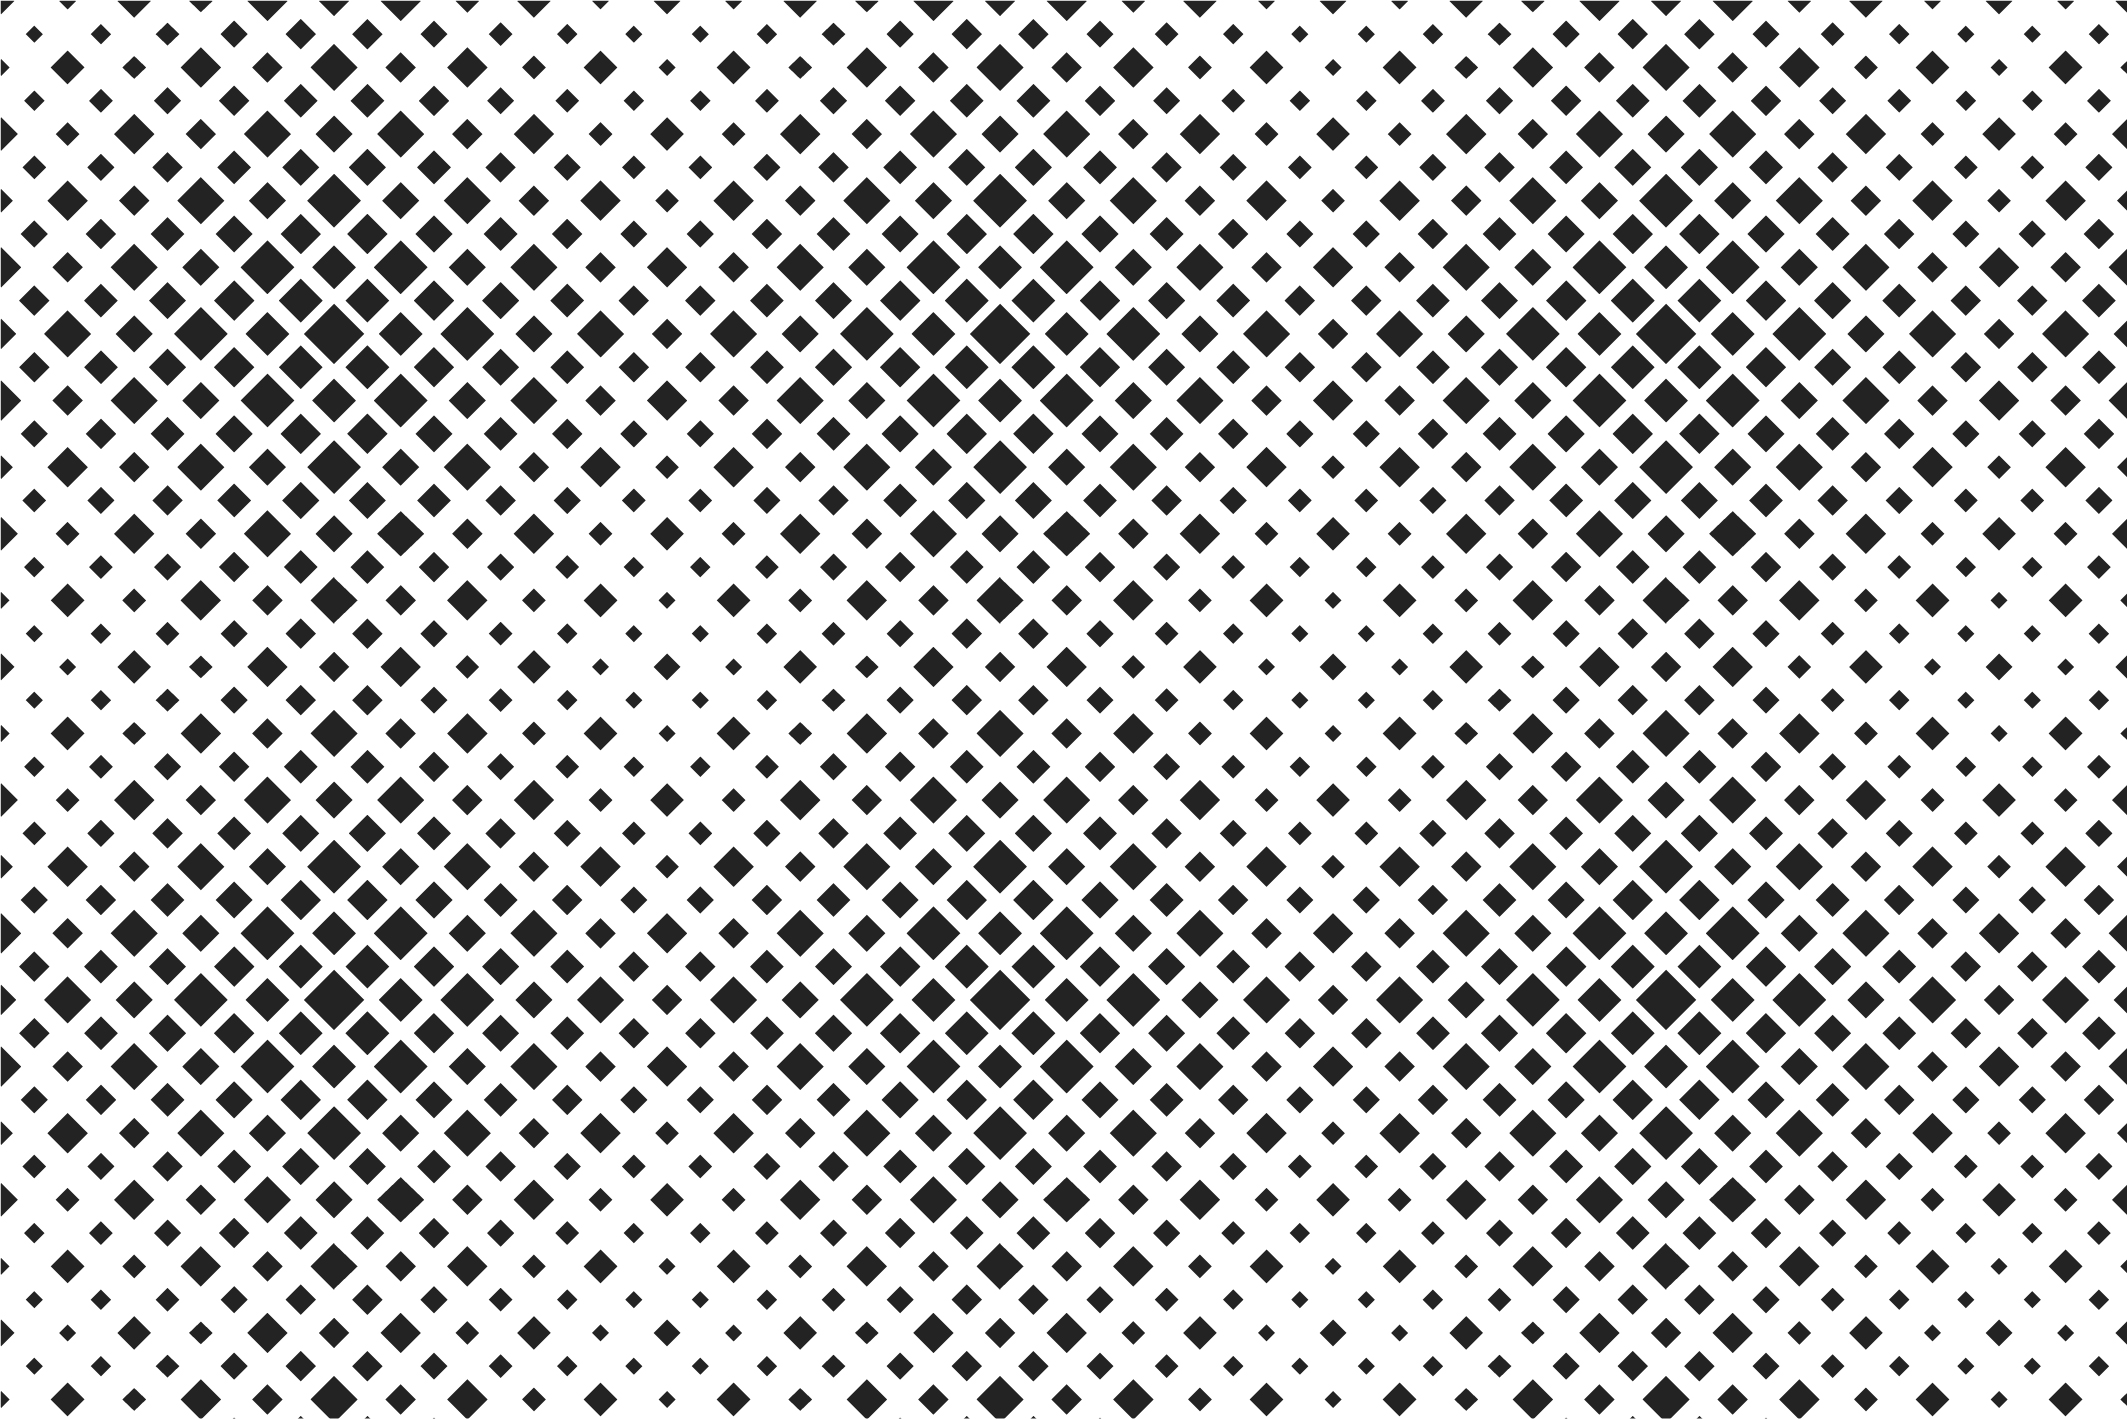 Halftone seamless patterns example image 9